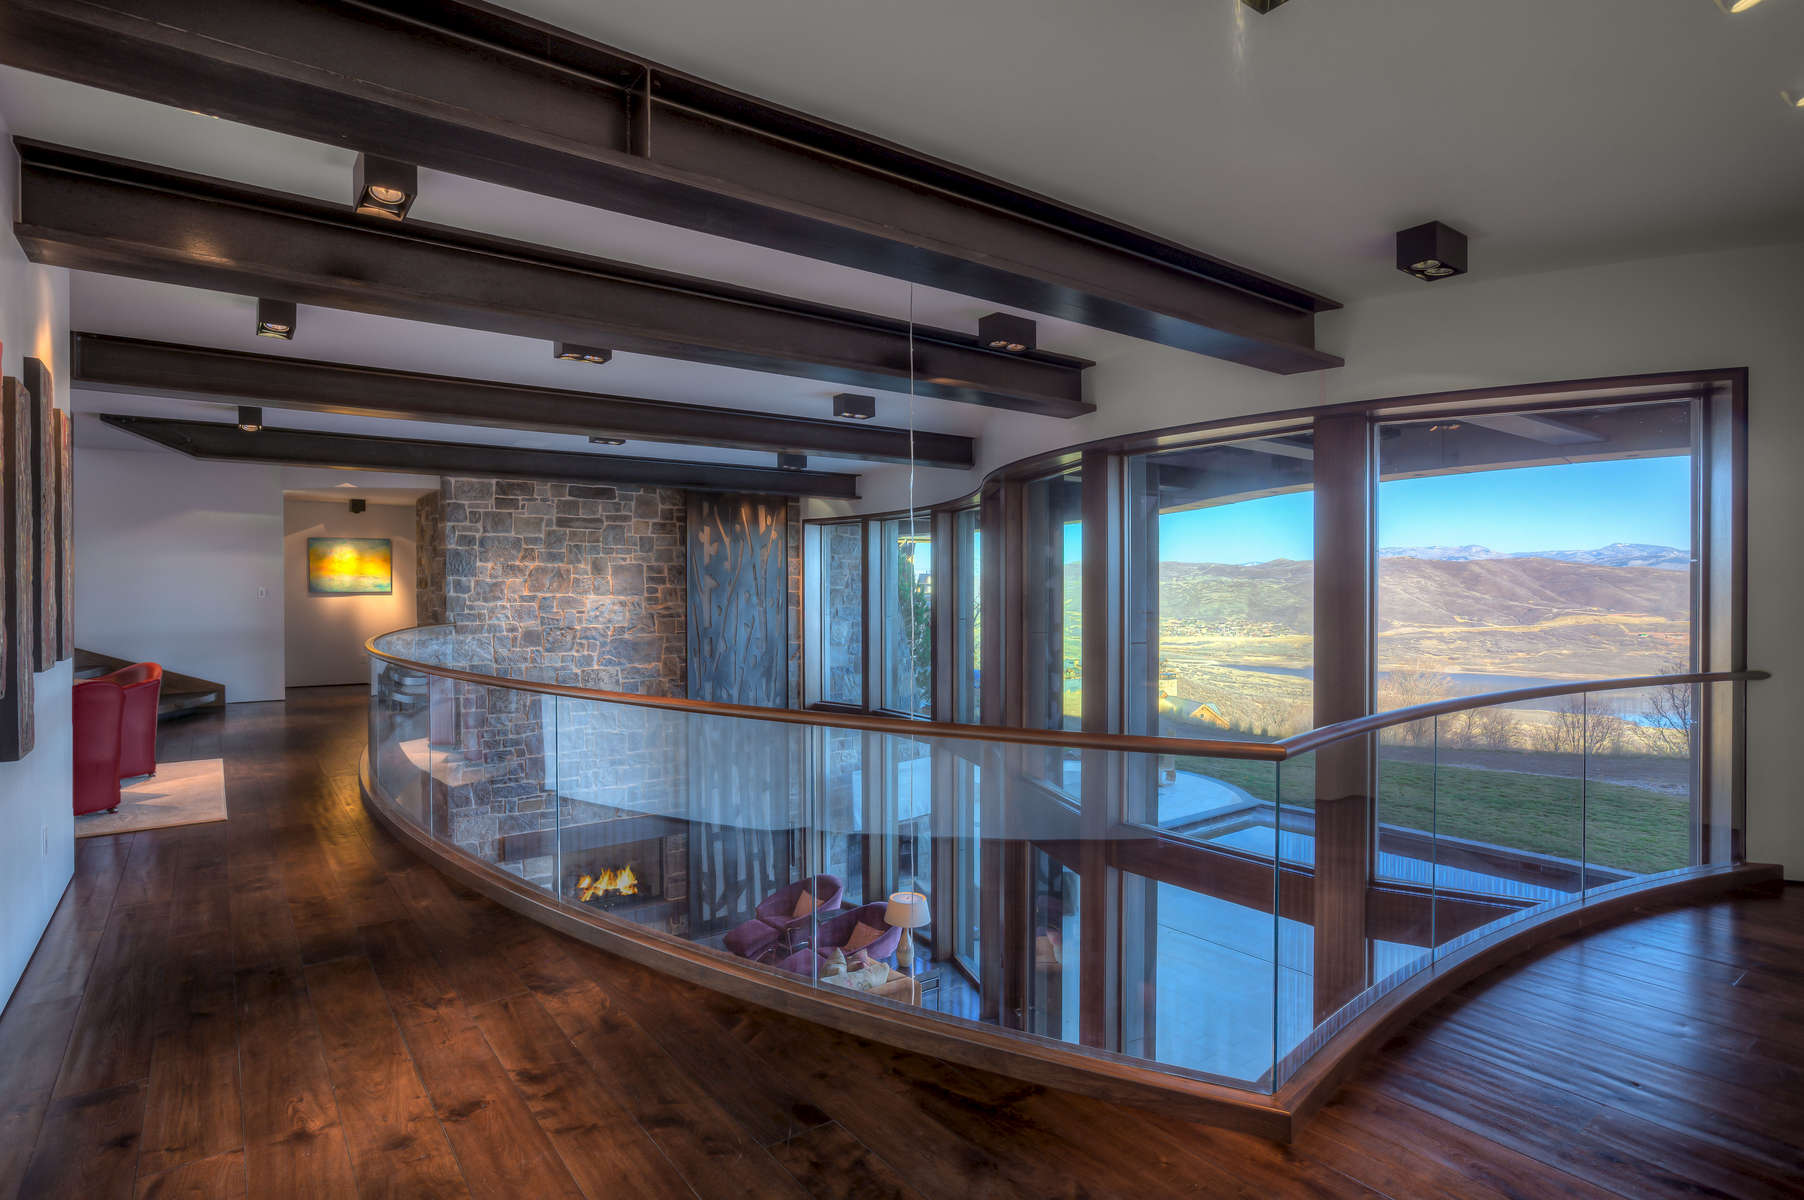 O_Brien-3606-46_E0E5774_FmRm-Balcony-to-fireplace-Edit